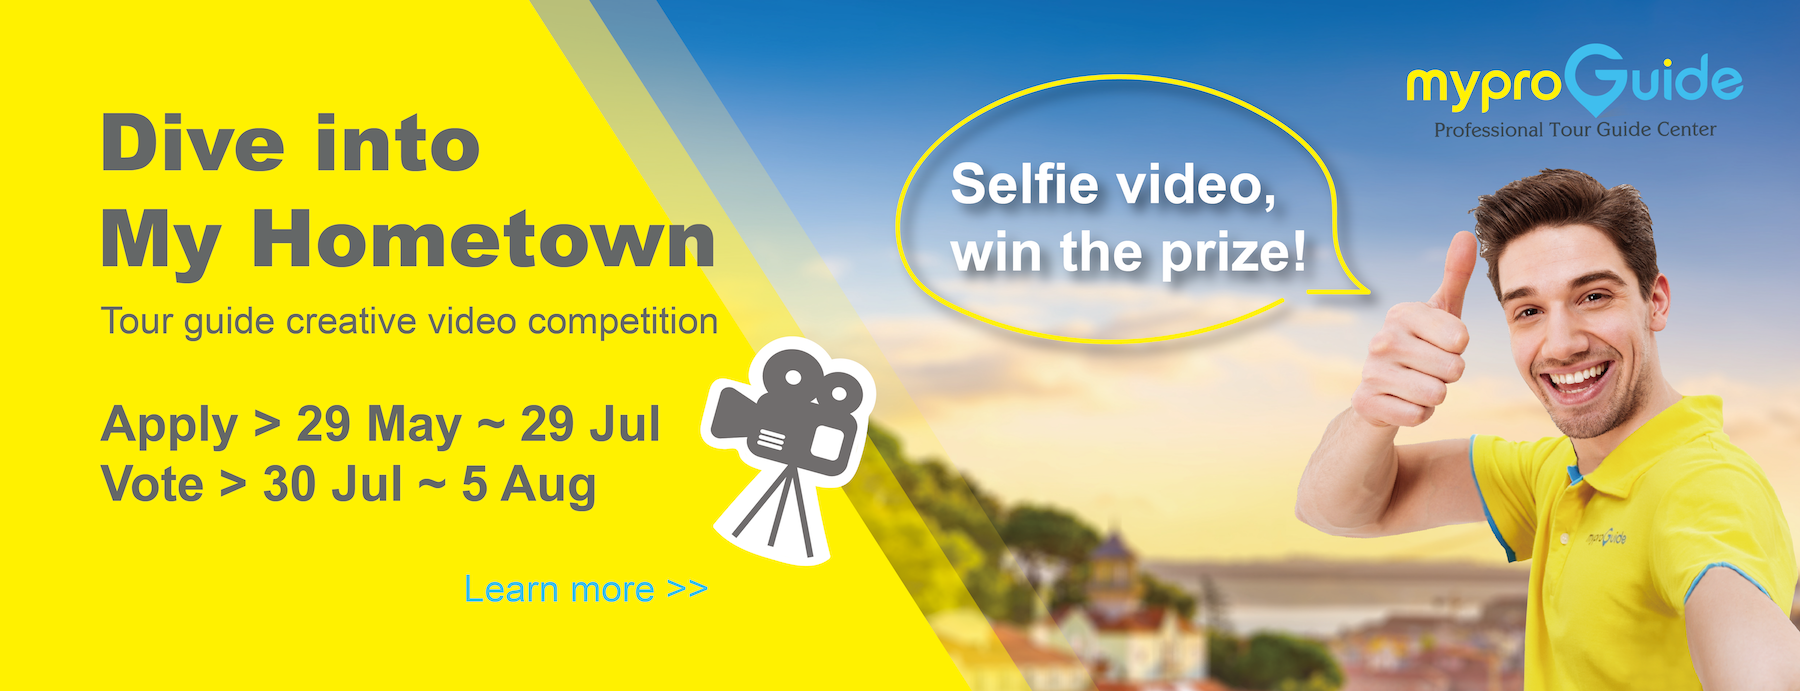 Dive into my hometown-Tour guide creative video competition